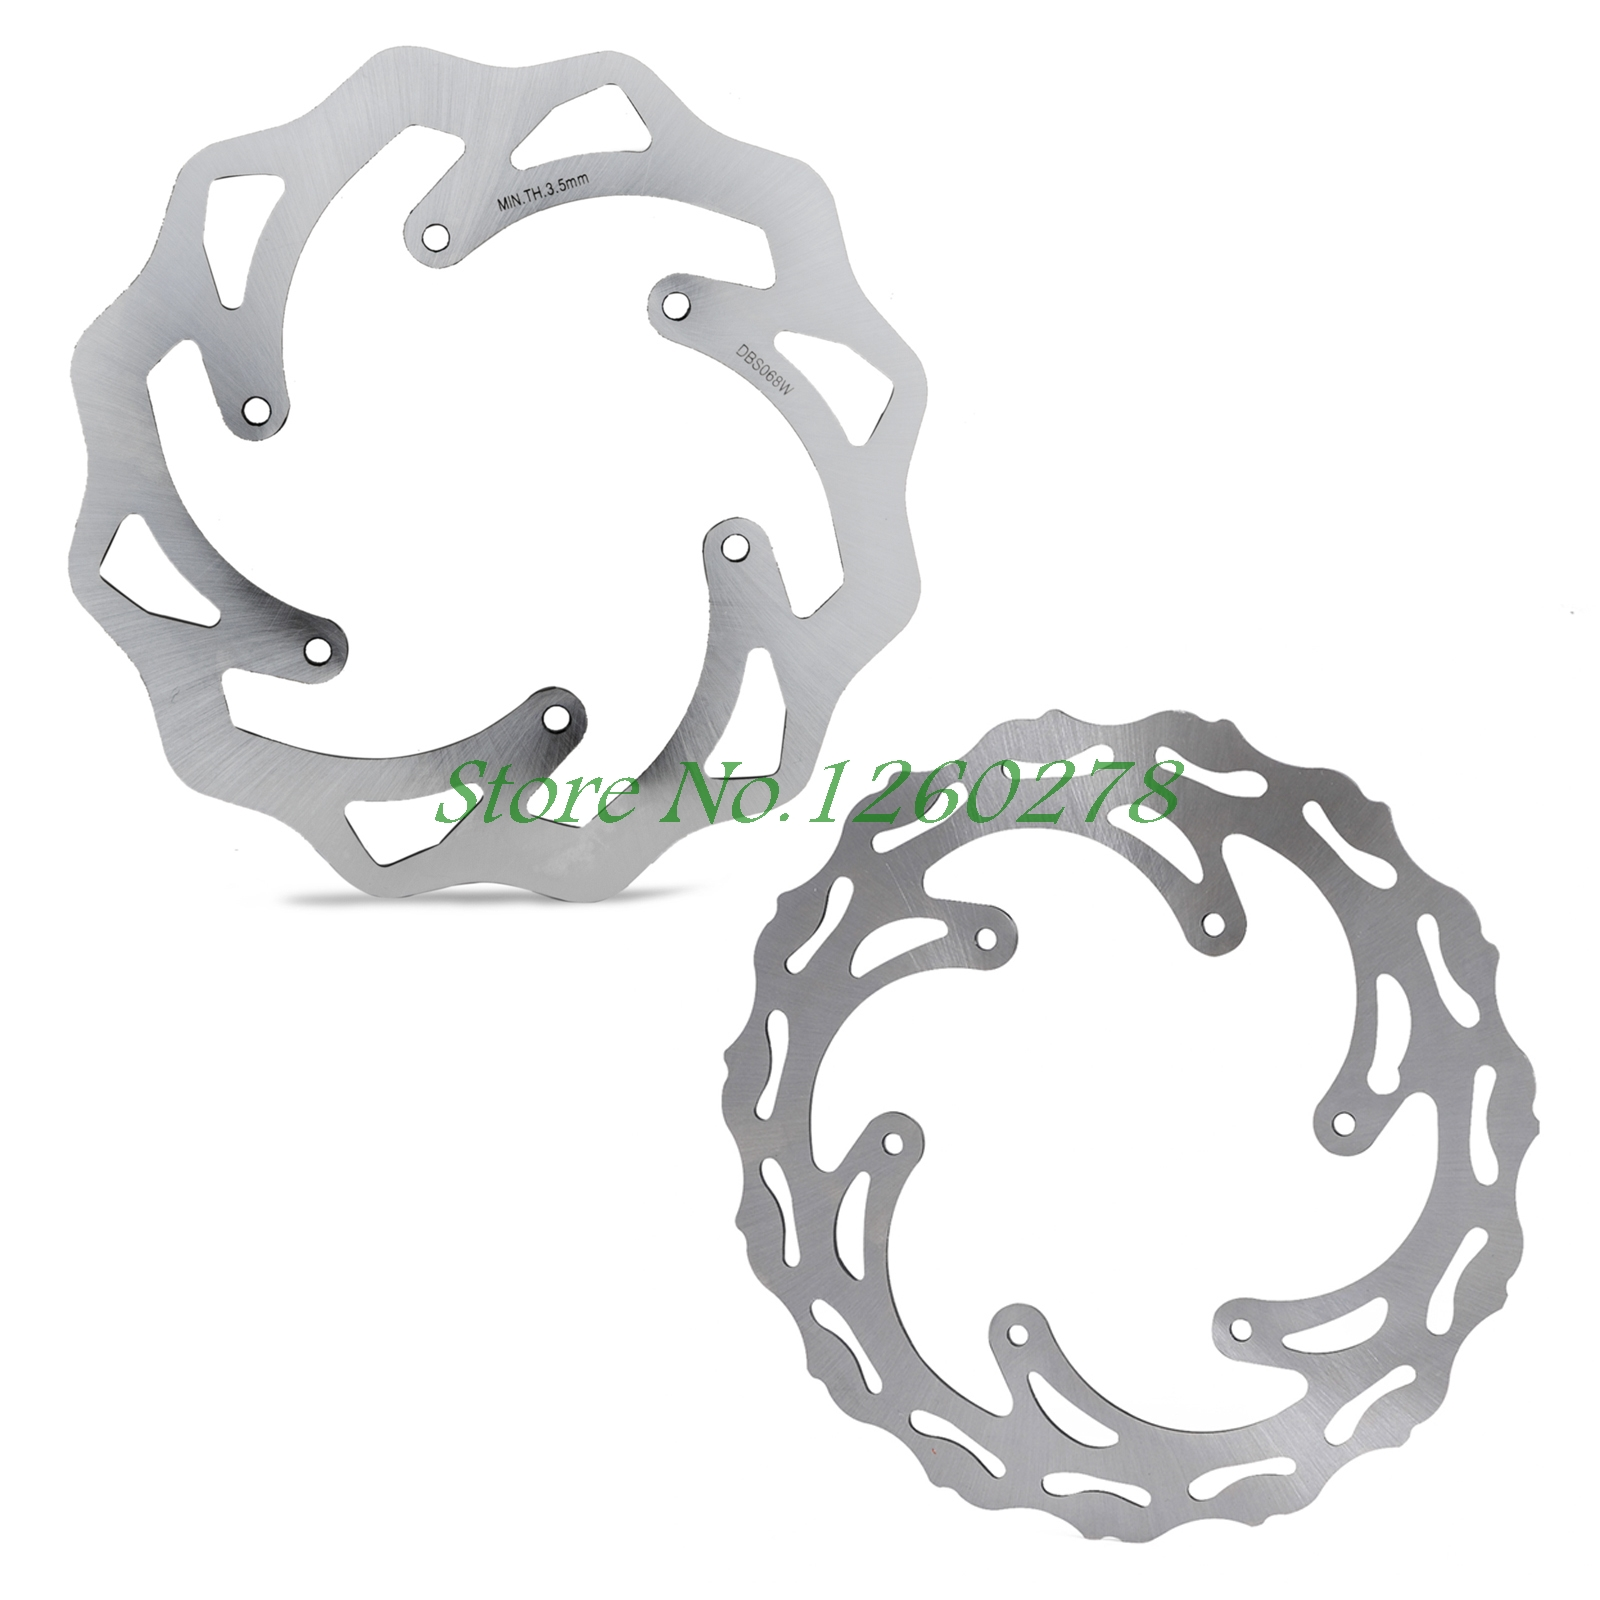 Motorcycle 260/220mm Front Rear Brake Discs Rotors For Husqvarna FC FX TC FE TE 125 250 300 350 450 501 2013 2014-2017 2018 цена и фото